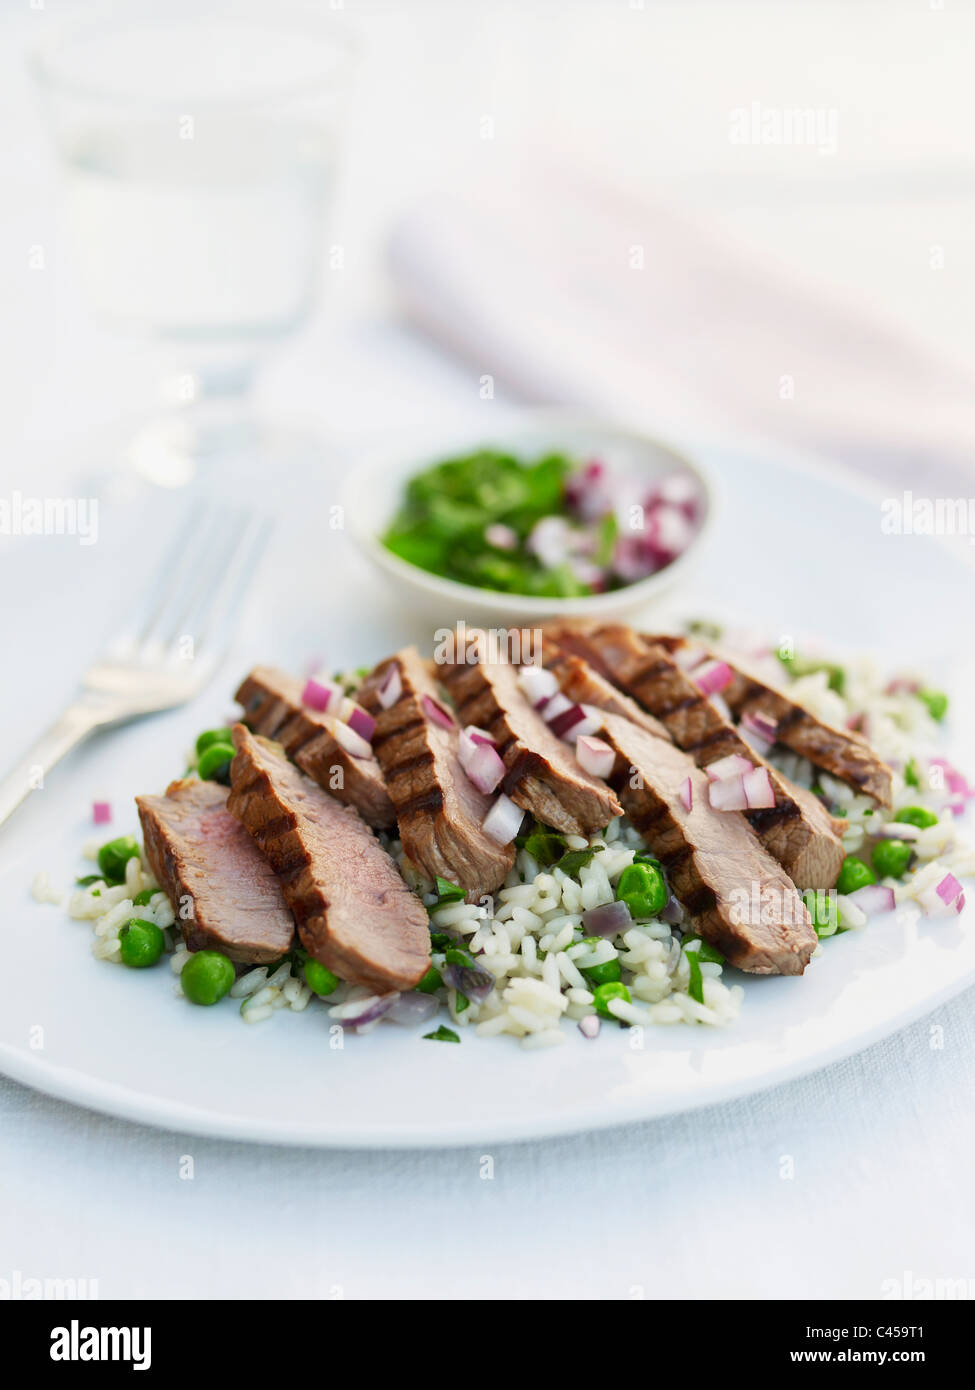 Sliced steak with rice on plate, close-up Stock Photo